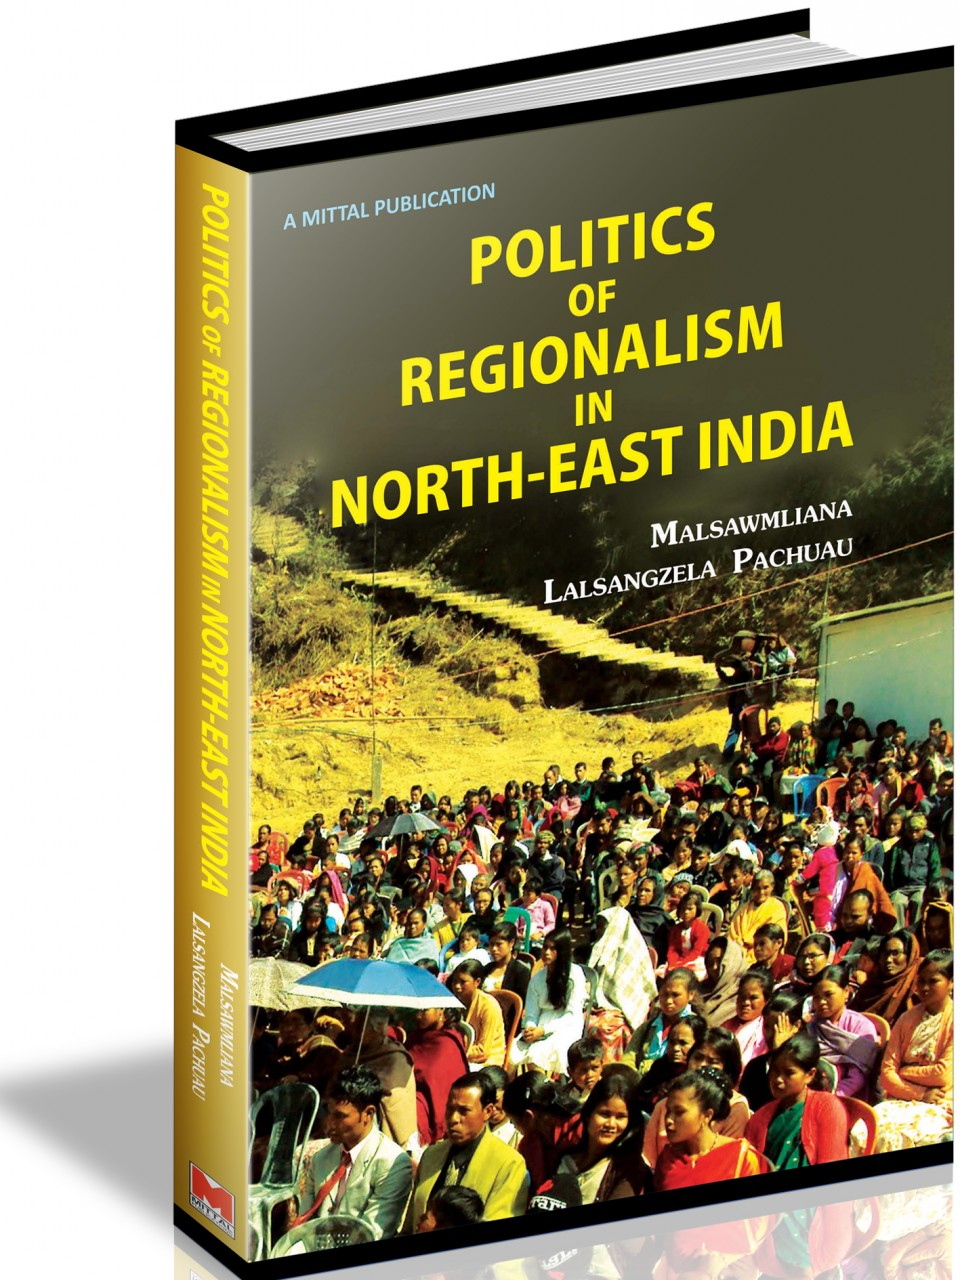 politics-of-regionalism-in-north-east-india